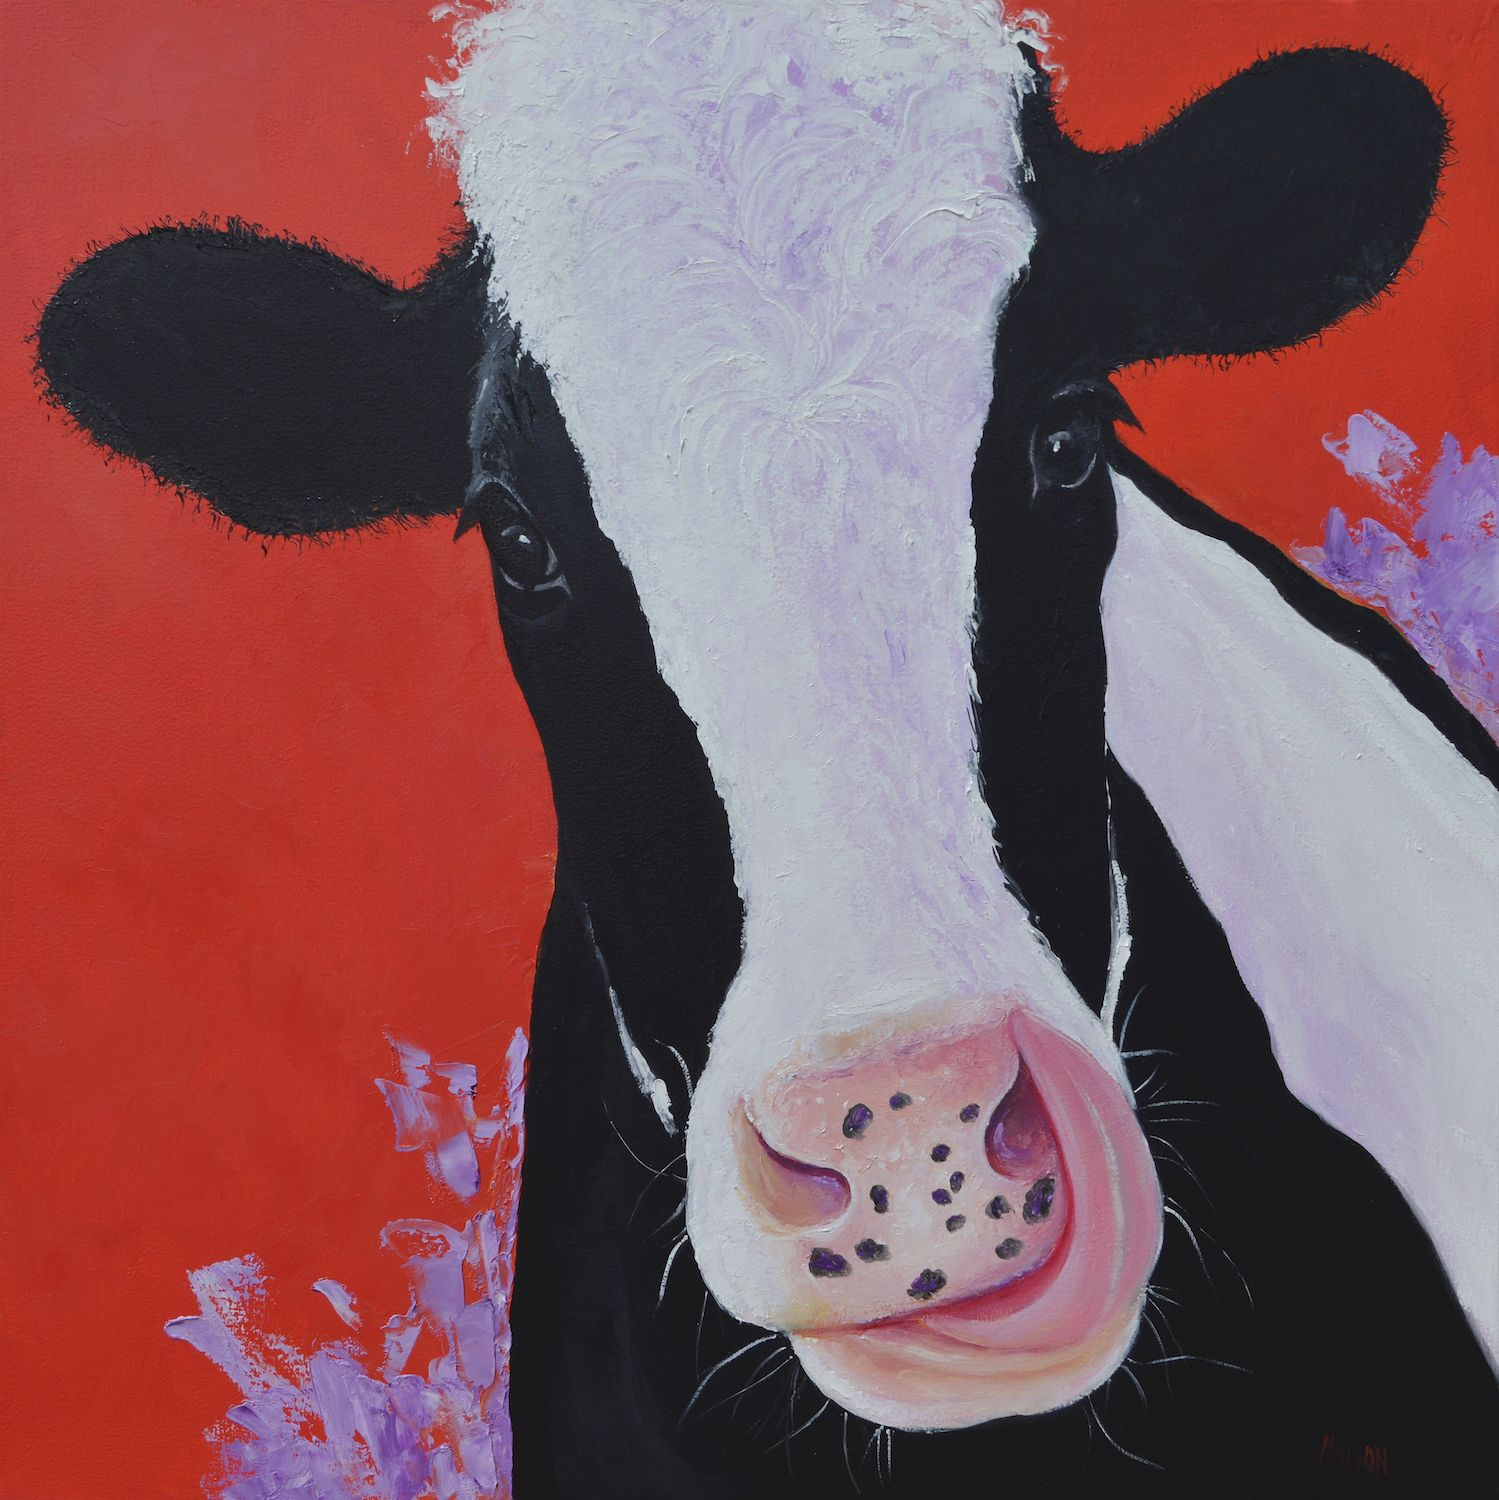 Moomoo The Cow By Jan Matson Paintings For Sale Bluethumb Online Art Gallery In 2020 Original Animal Art Animal Paintings Cow Painting